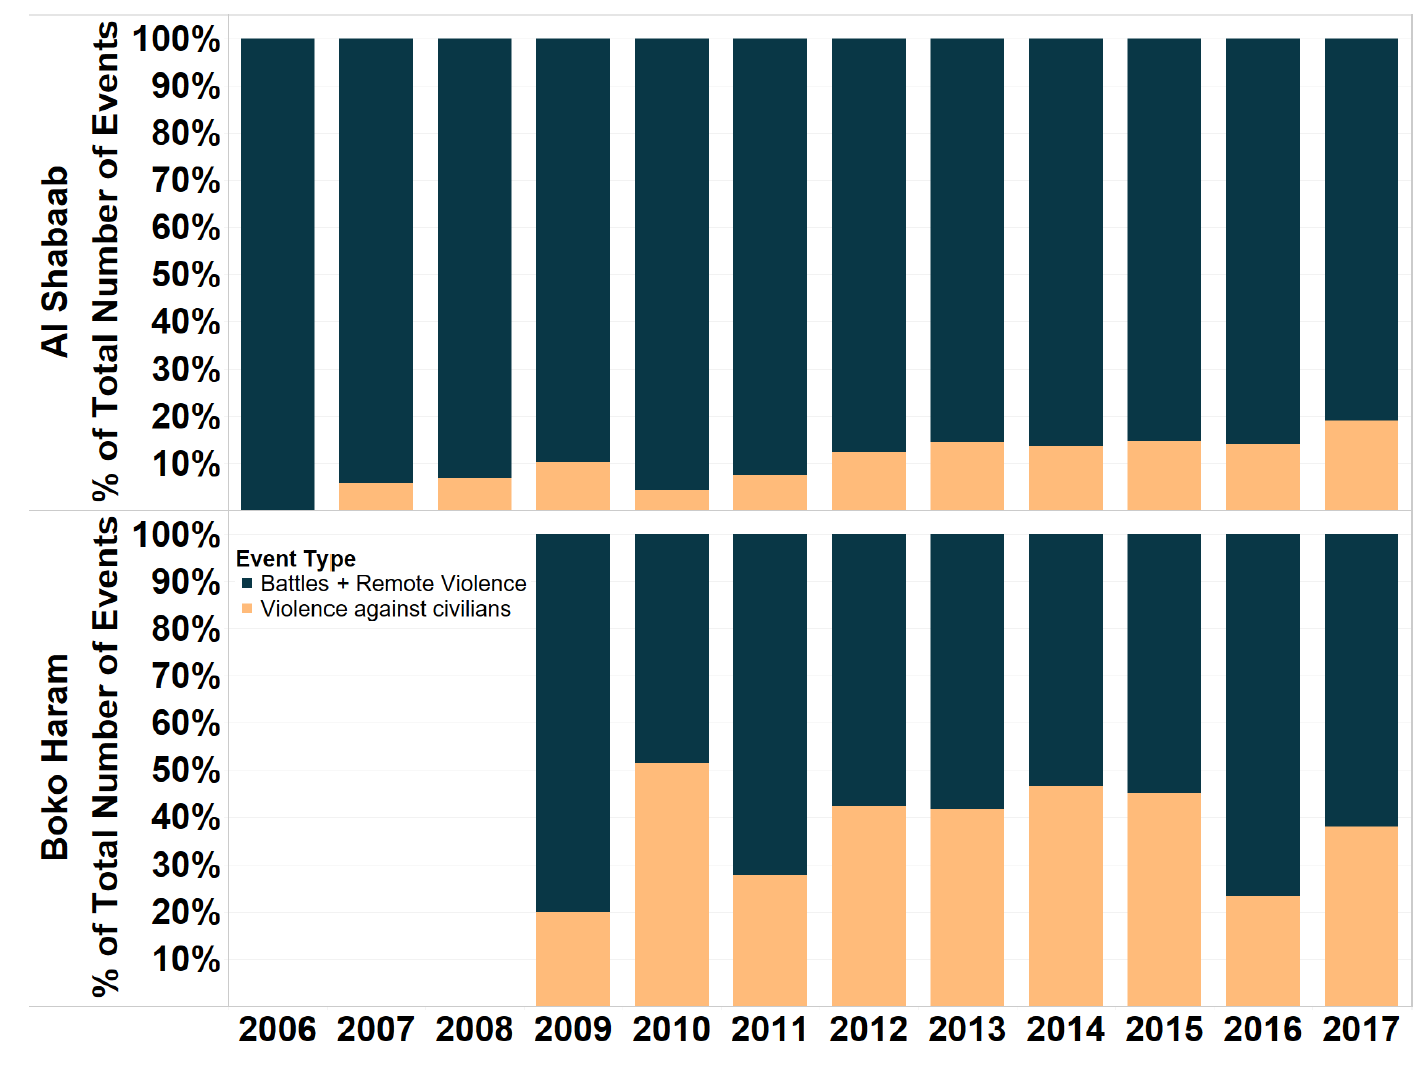 Figure 2: Al Shabaab and Boko Haram Proportions of Conflict Activity, August 2006 - September 2017